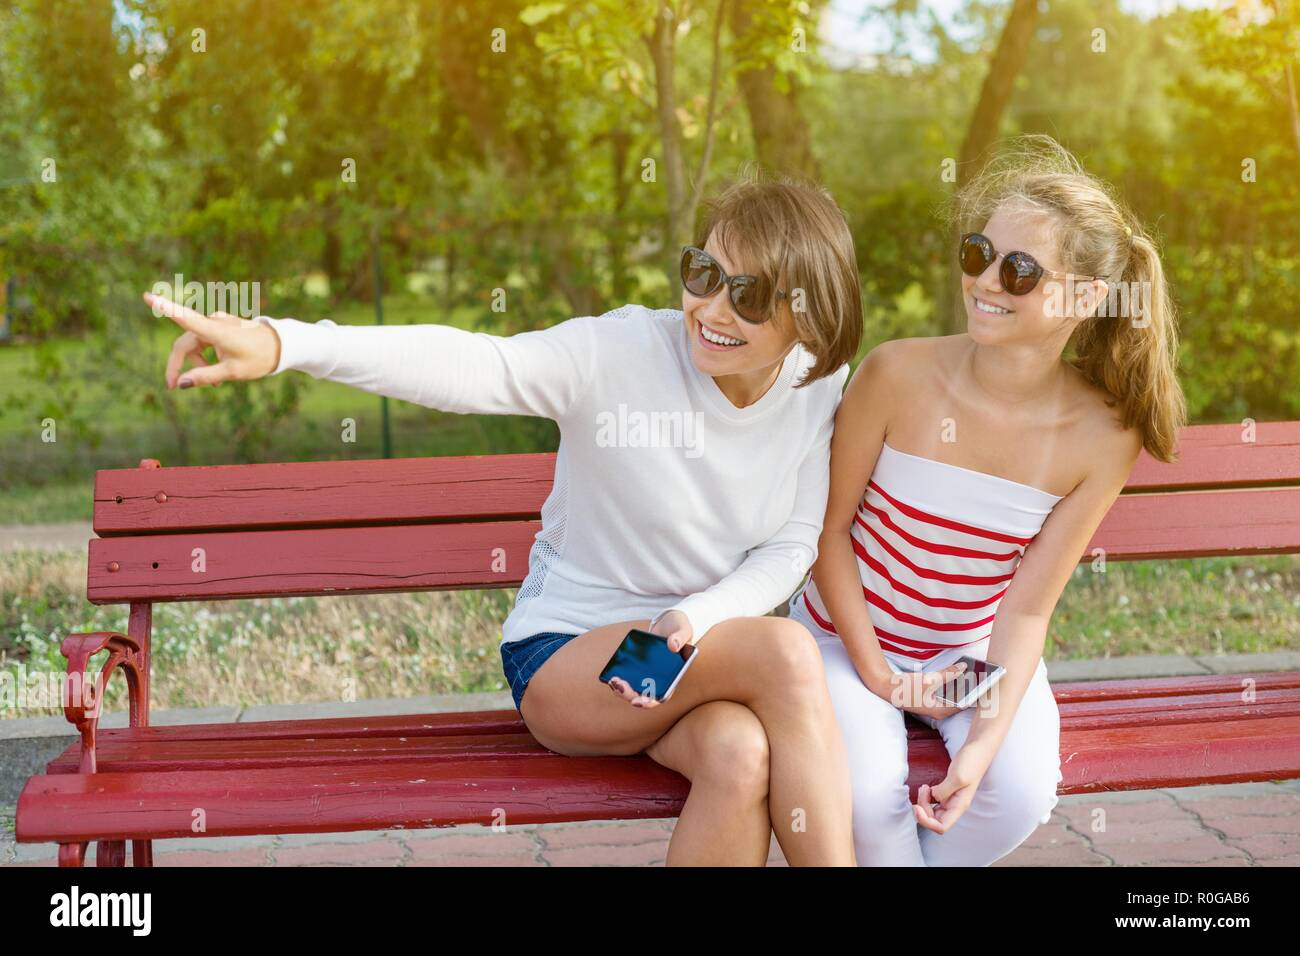 Communication between parent and child. Mom and daughter teenager talking and laughing while sitting on the bench in the park Stock Photo